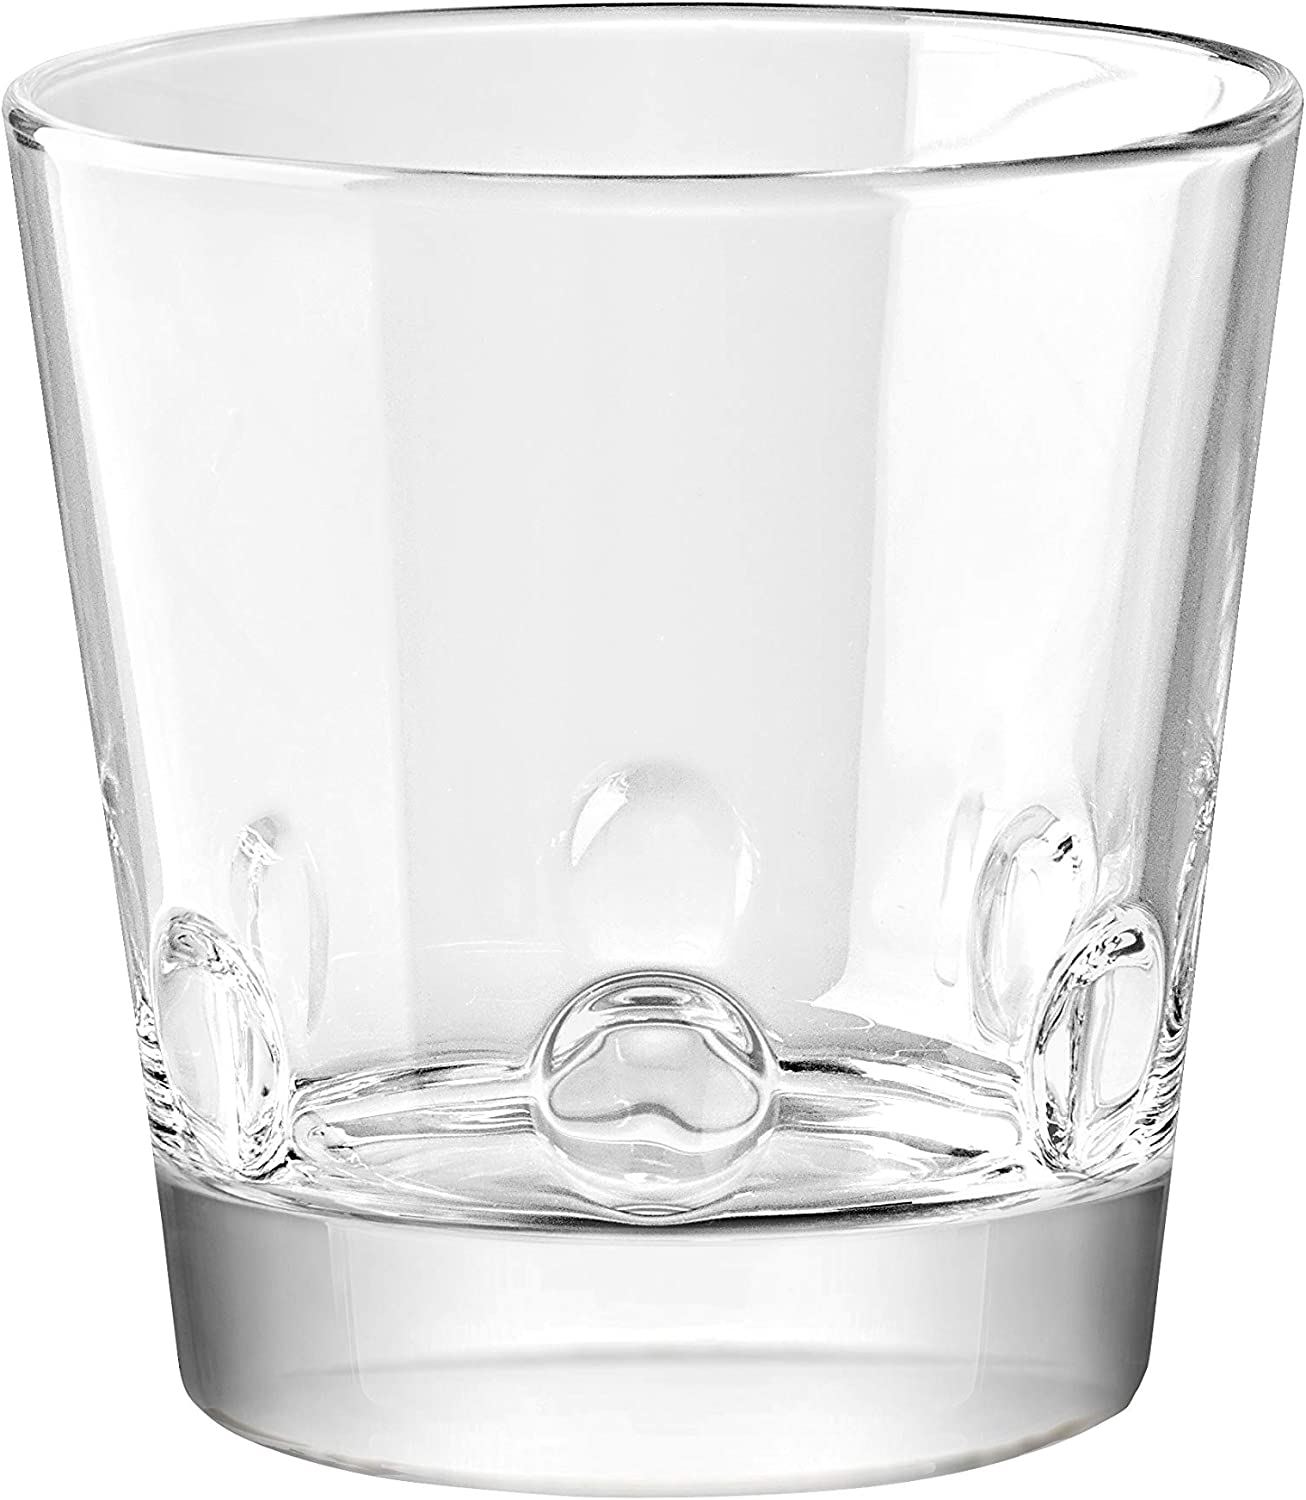 Double Old Fashioned Tumbler Glasses Uniquely Designed Wont Get Stuck Design on The Base Barski European Glass Stackable Set of 6-13.5 oz - Made in Europe